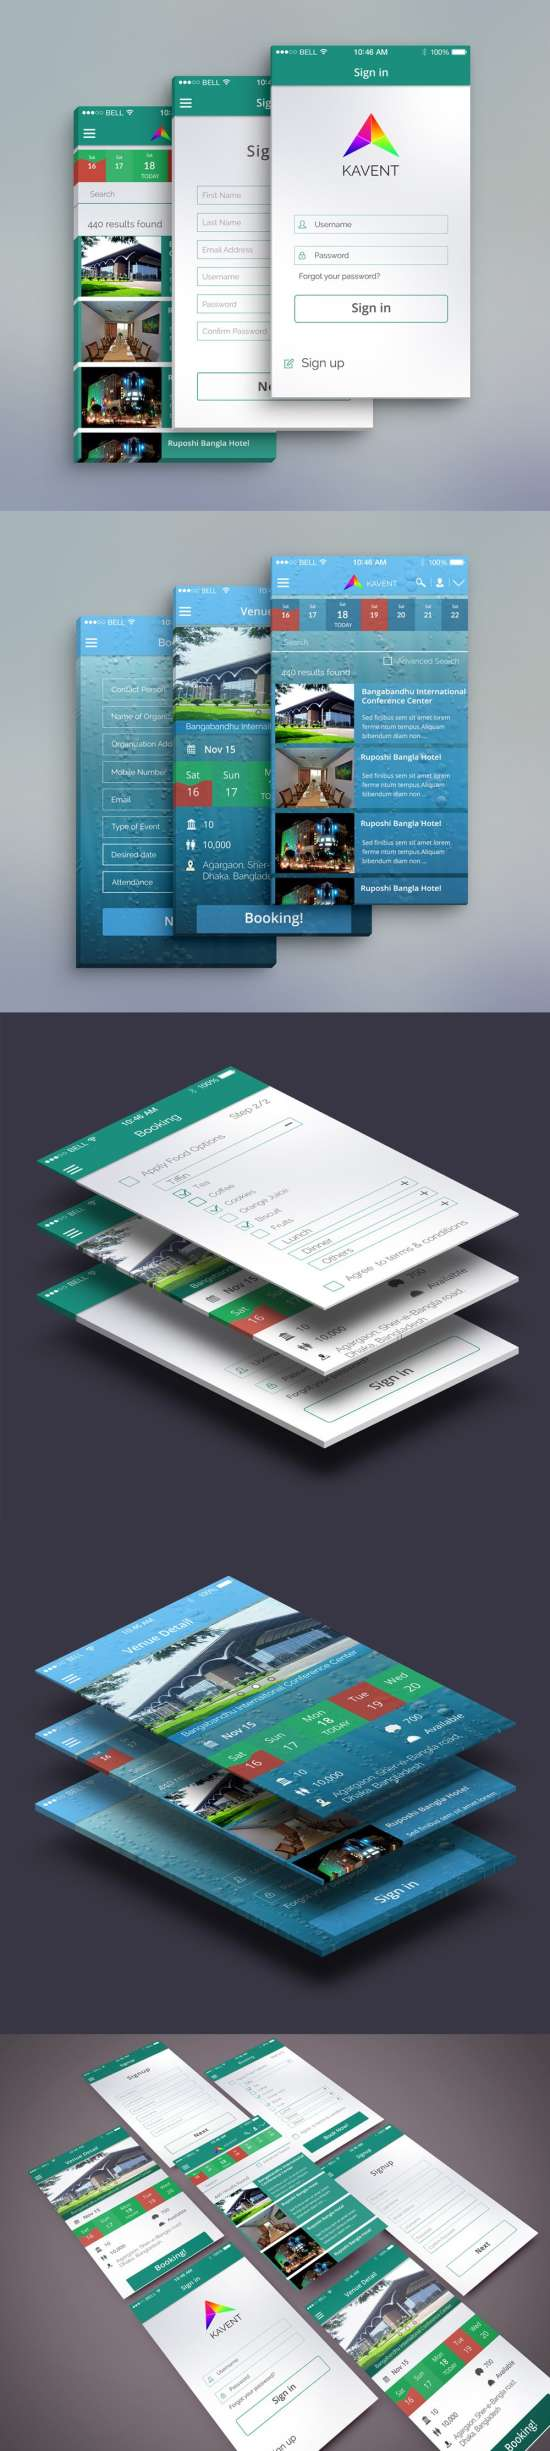 event_mobile_app_ui_psd